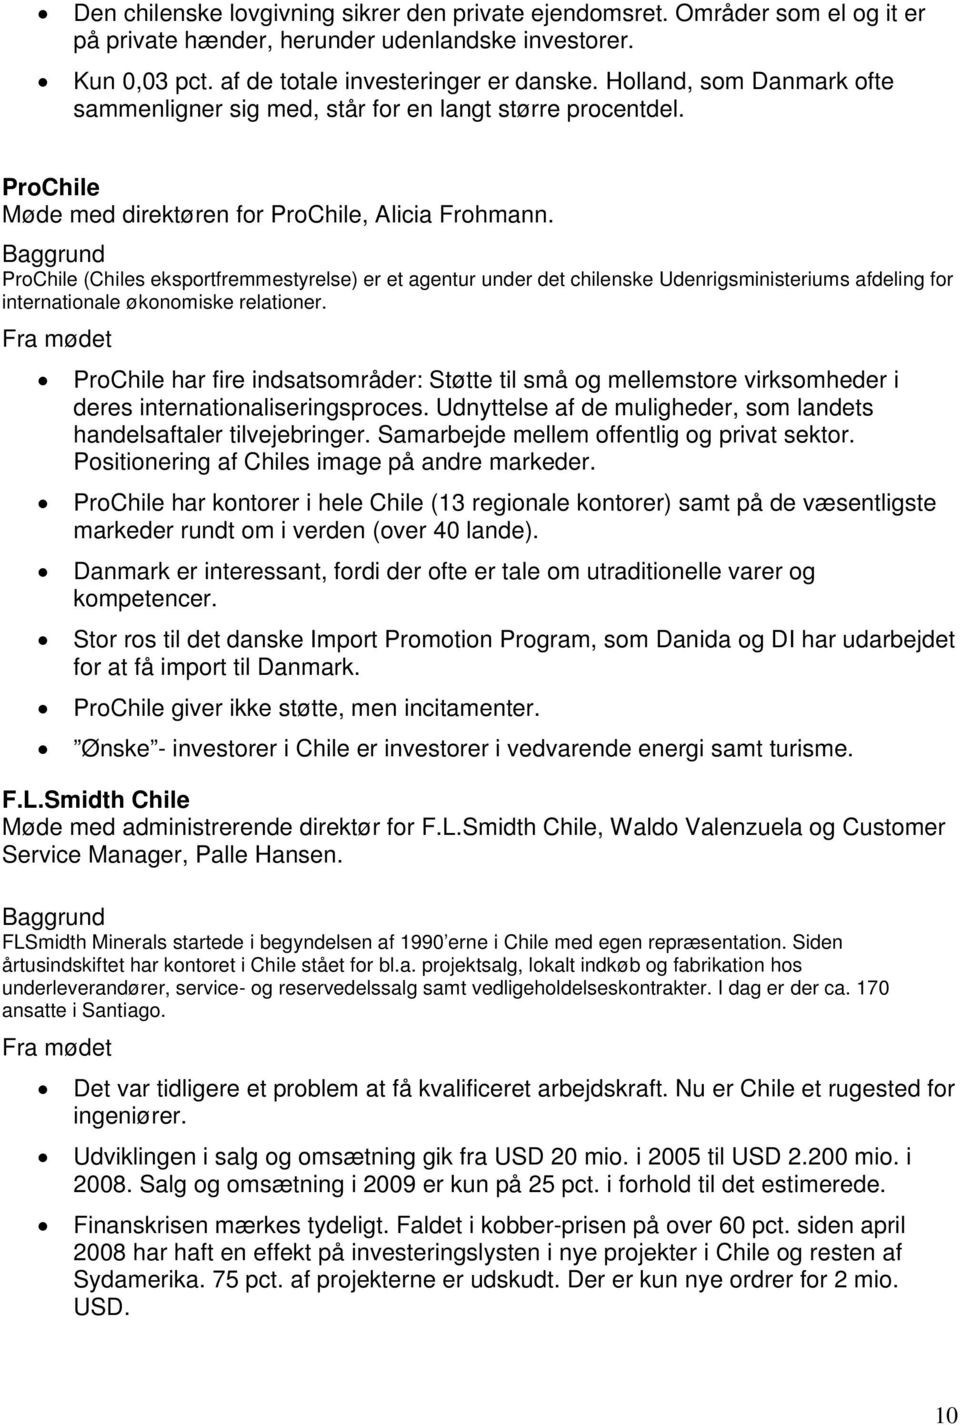 ProChile (Chiles eksportfremmestyrelse) er et agentur under det chilenske Udenrigsministeriums afdeling for internationale økonomiske relationer.